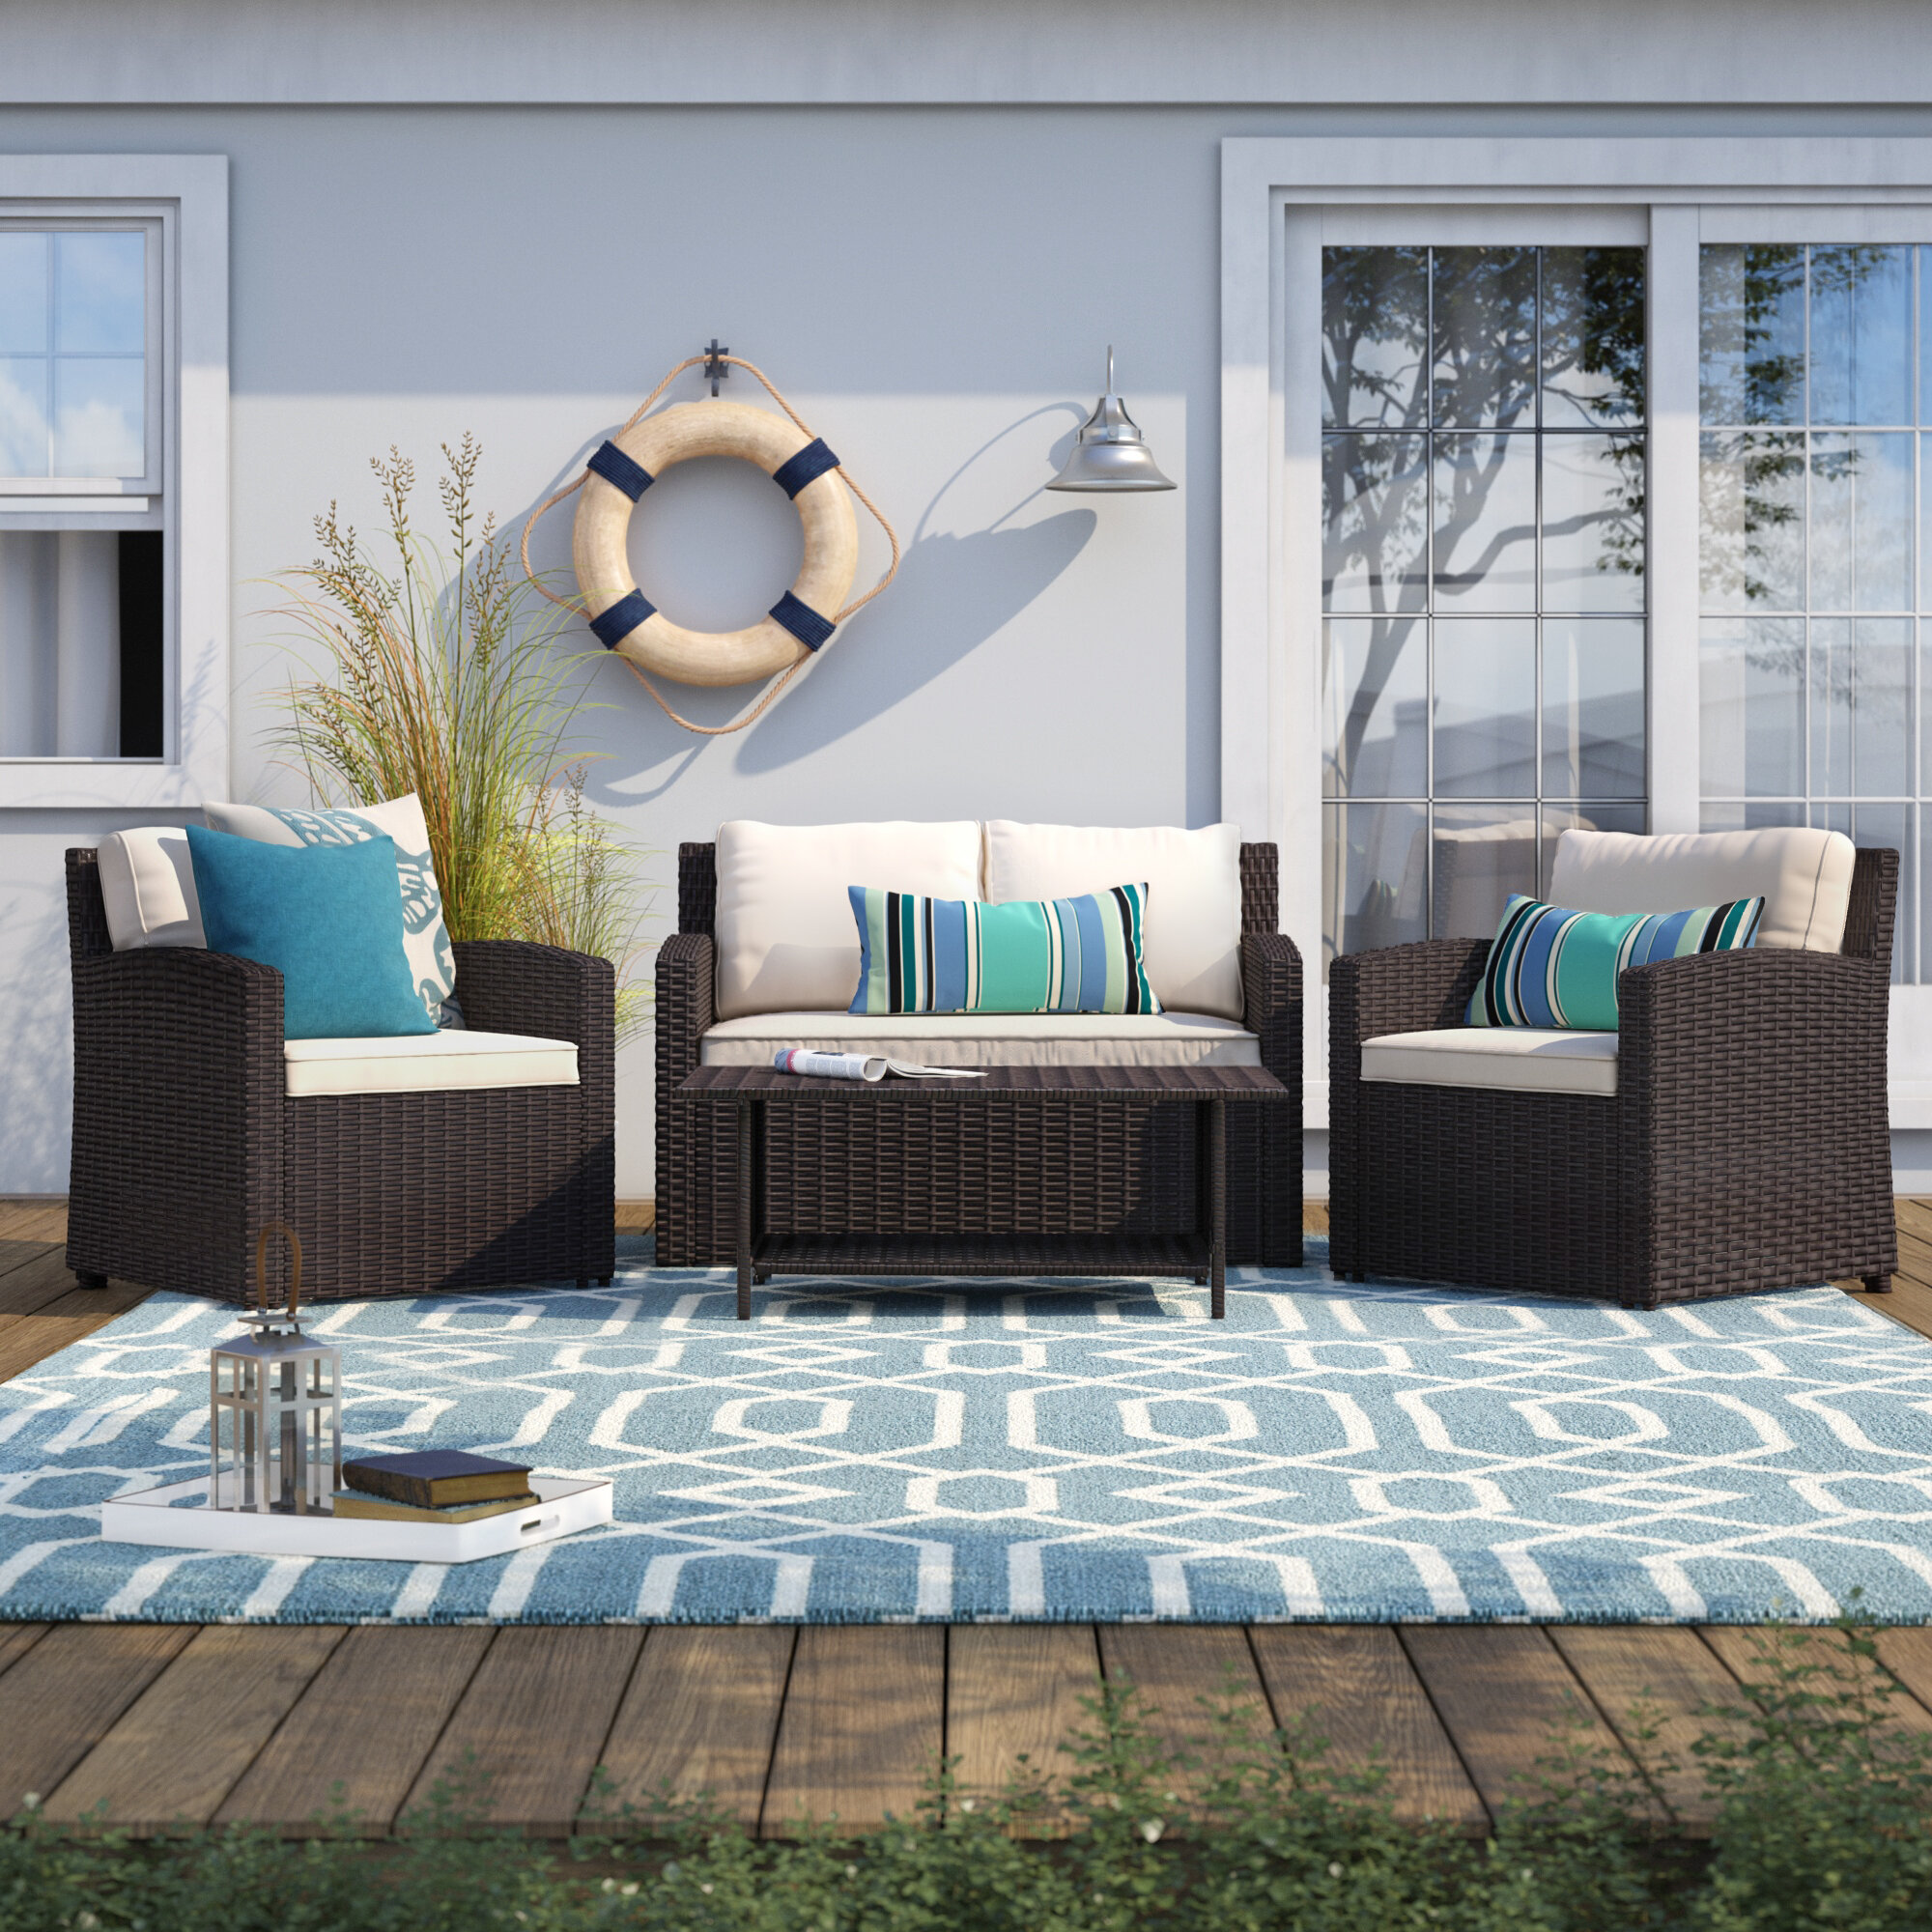 Longshore Tides Kingsbury 4 Piece Rattan Sofa Seating Group With Cushions Reviews Wayfair